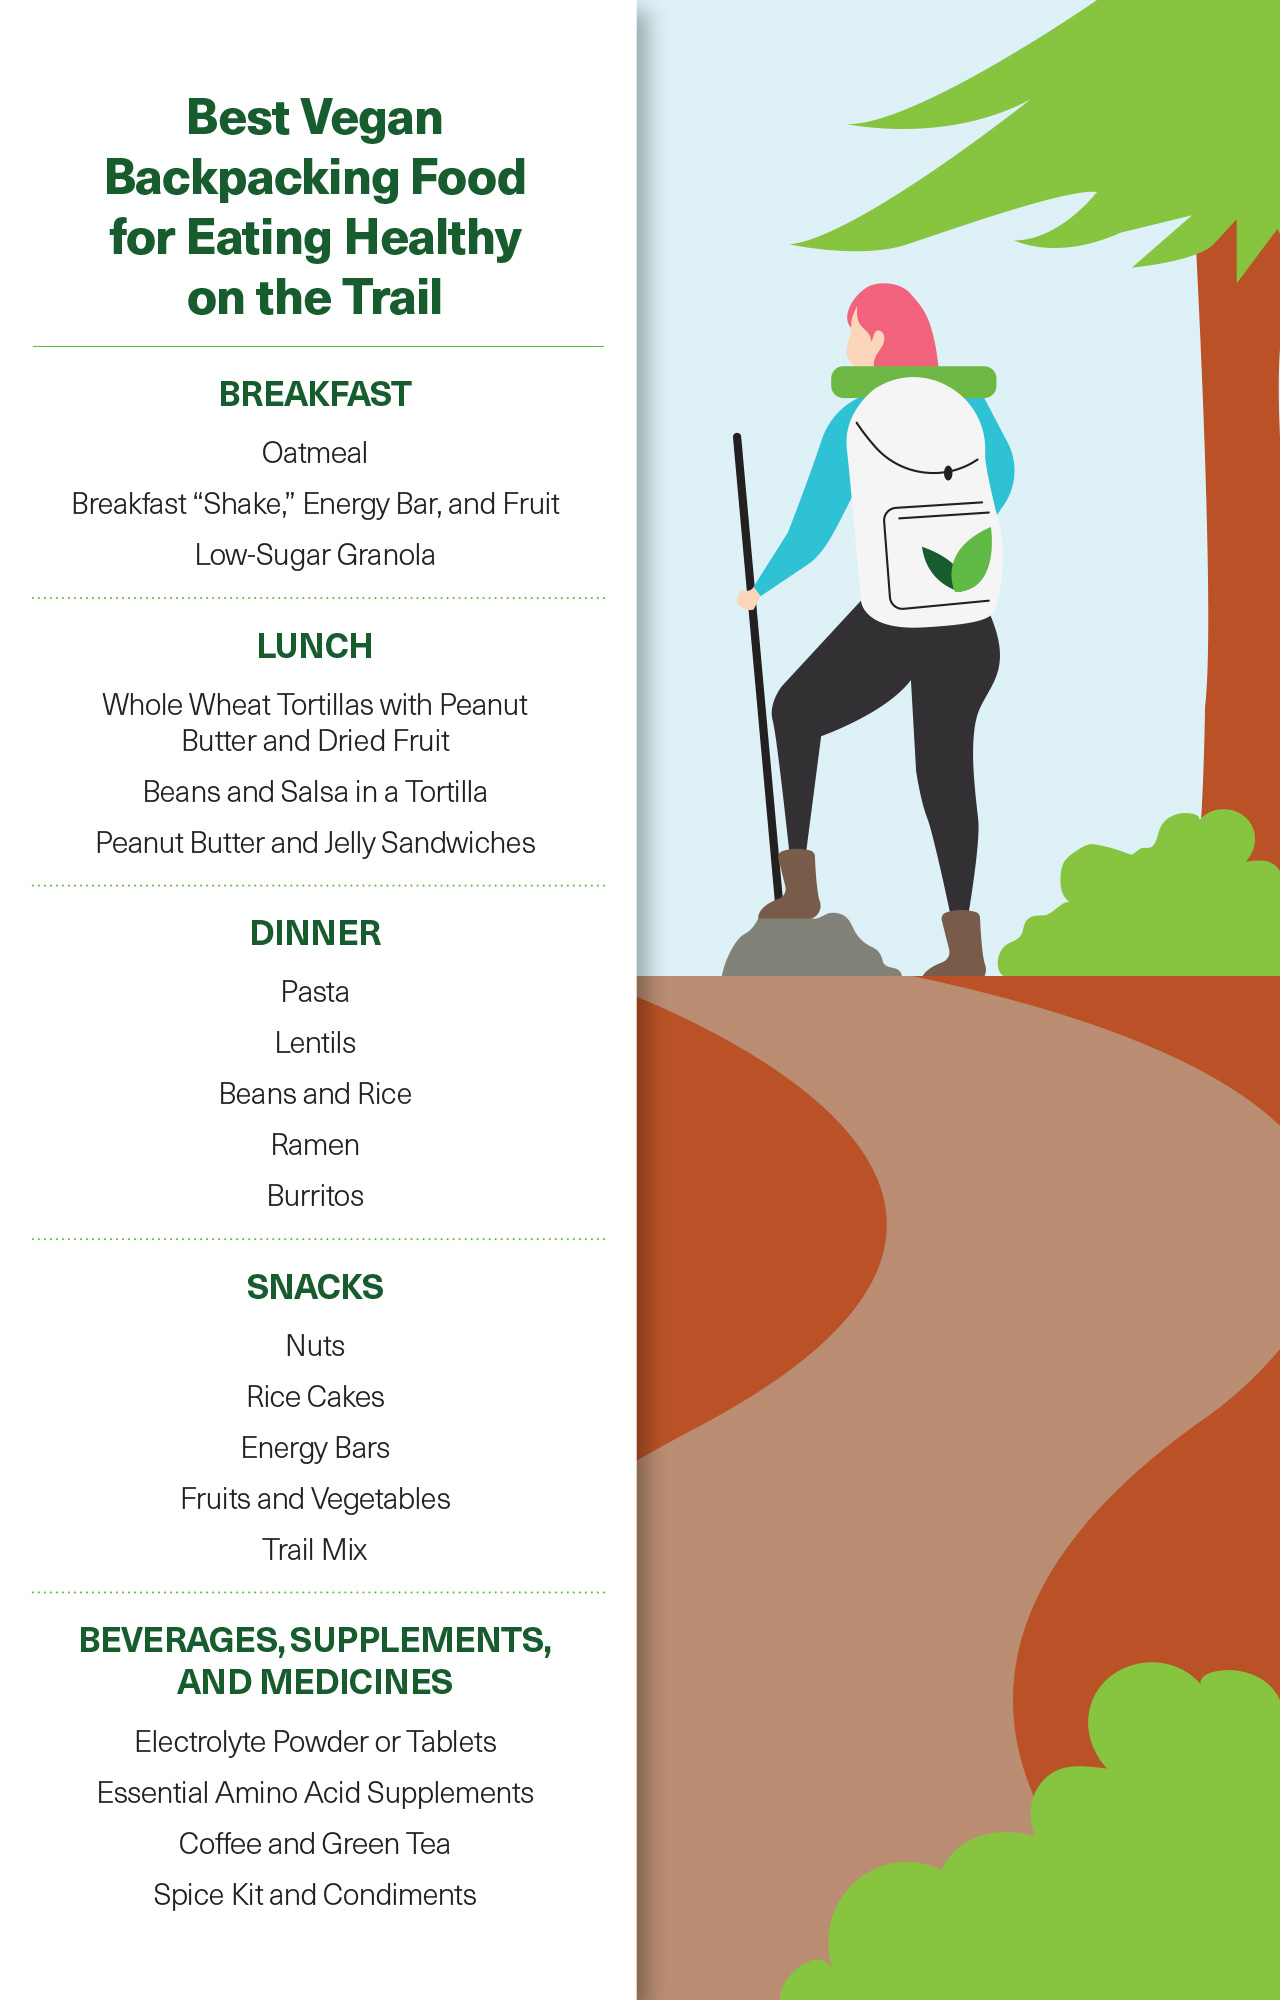 Best Vegan Backpacking Food for Eating Healthy on the Trail